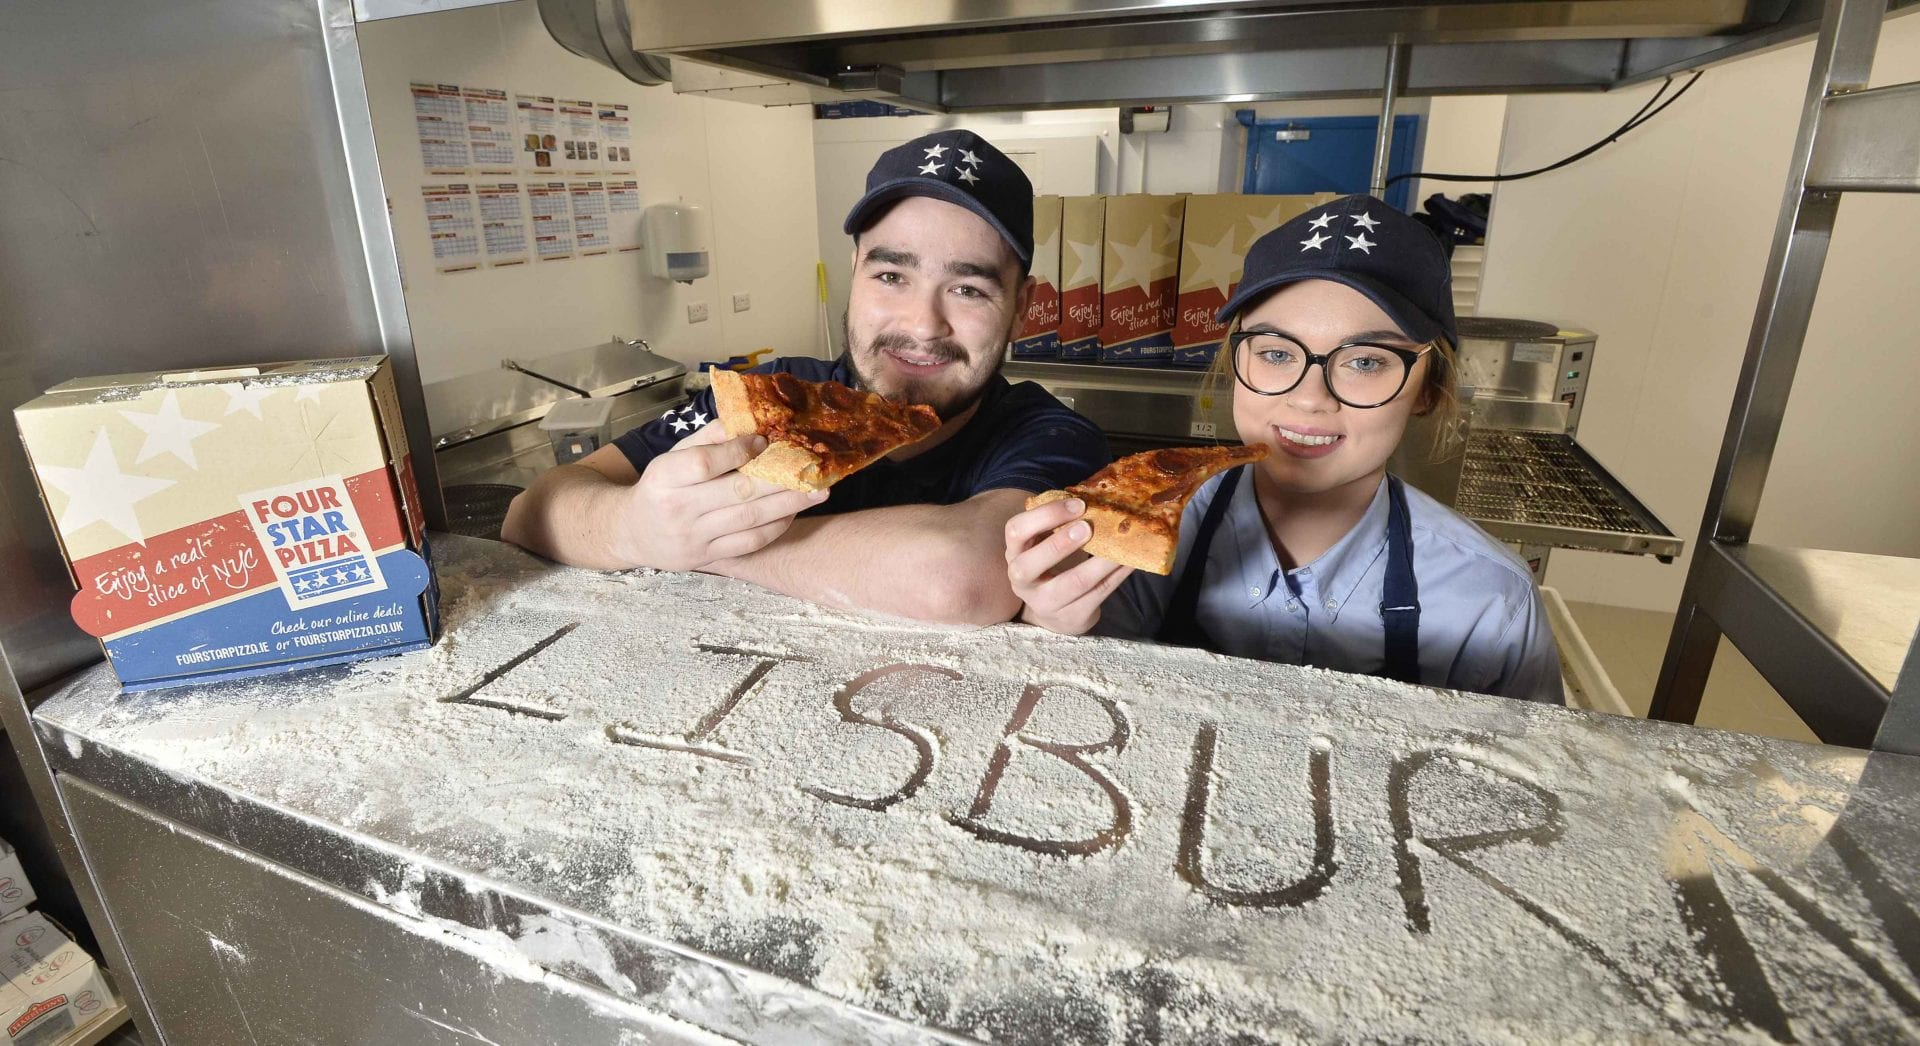 30 New Jobs As Four Star Pizza Comes To Lisburn Businessfirst